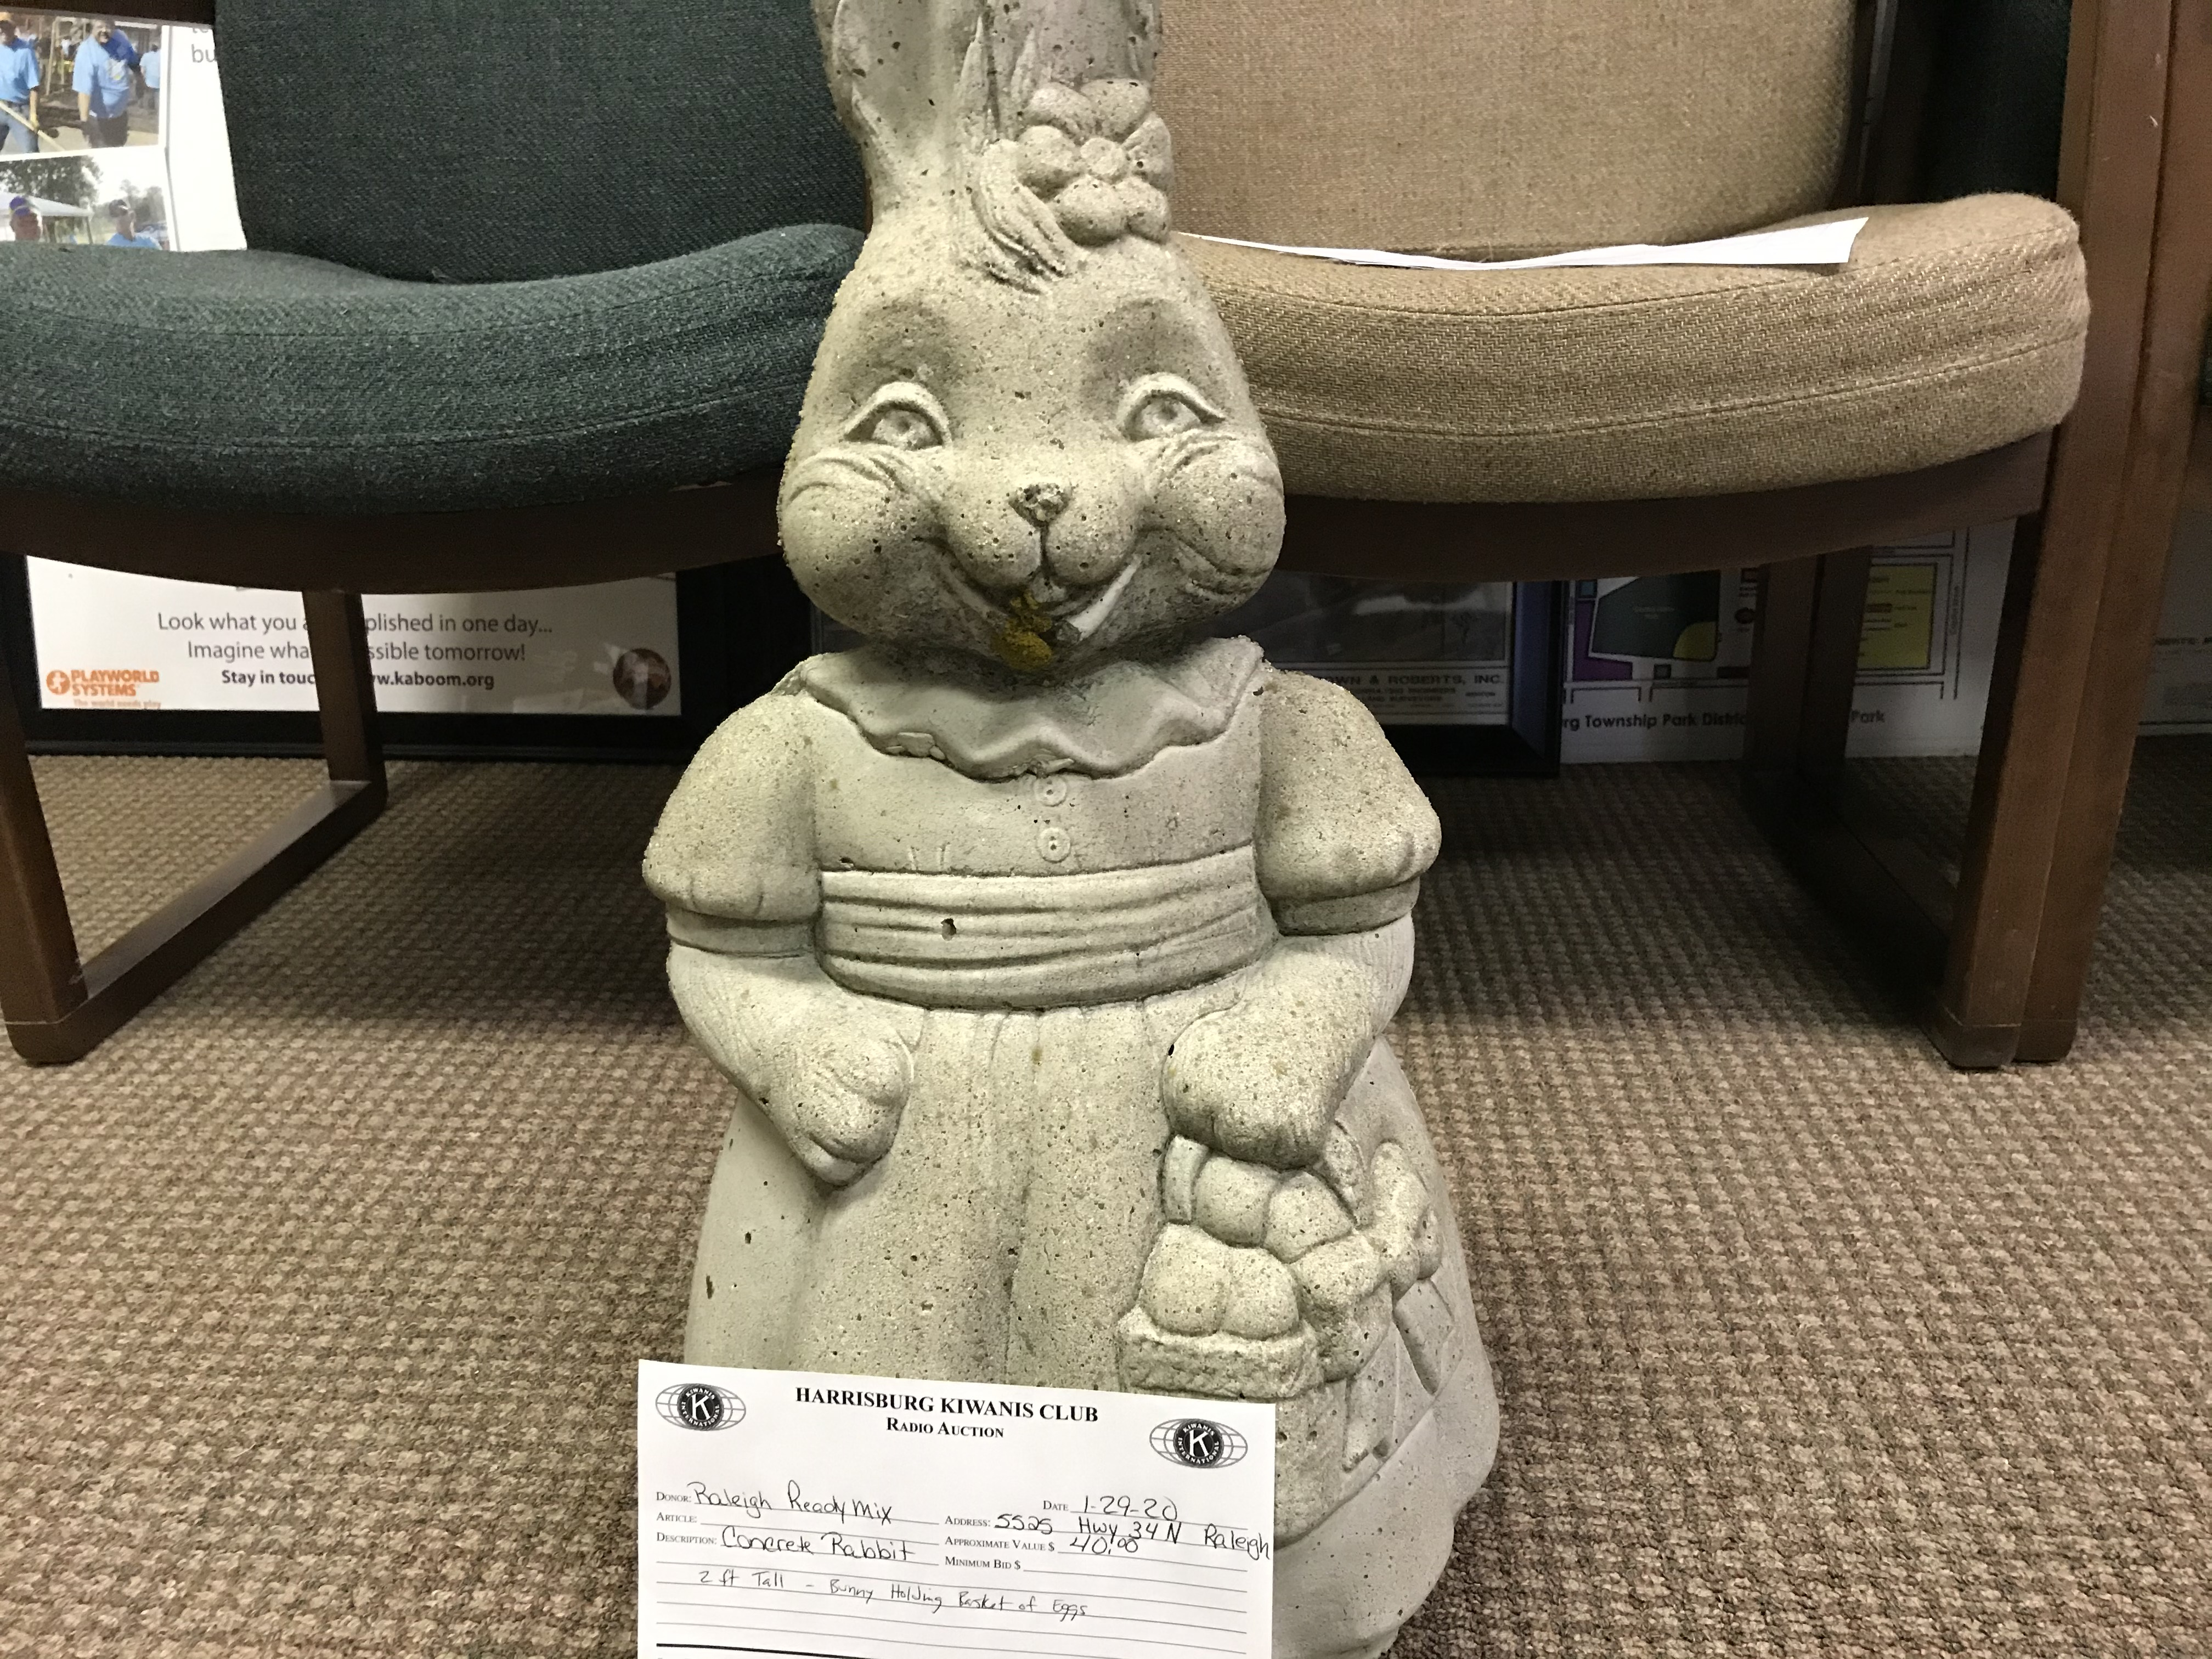 Item 129 - Raleigh Ready Mix Concrete Rabbit - 2ft Tall